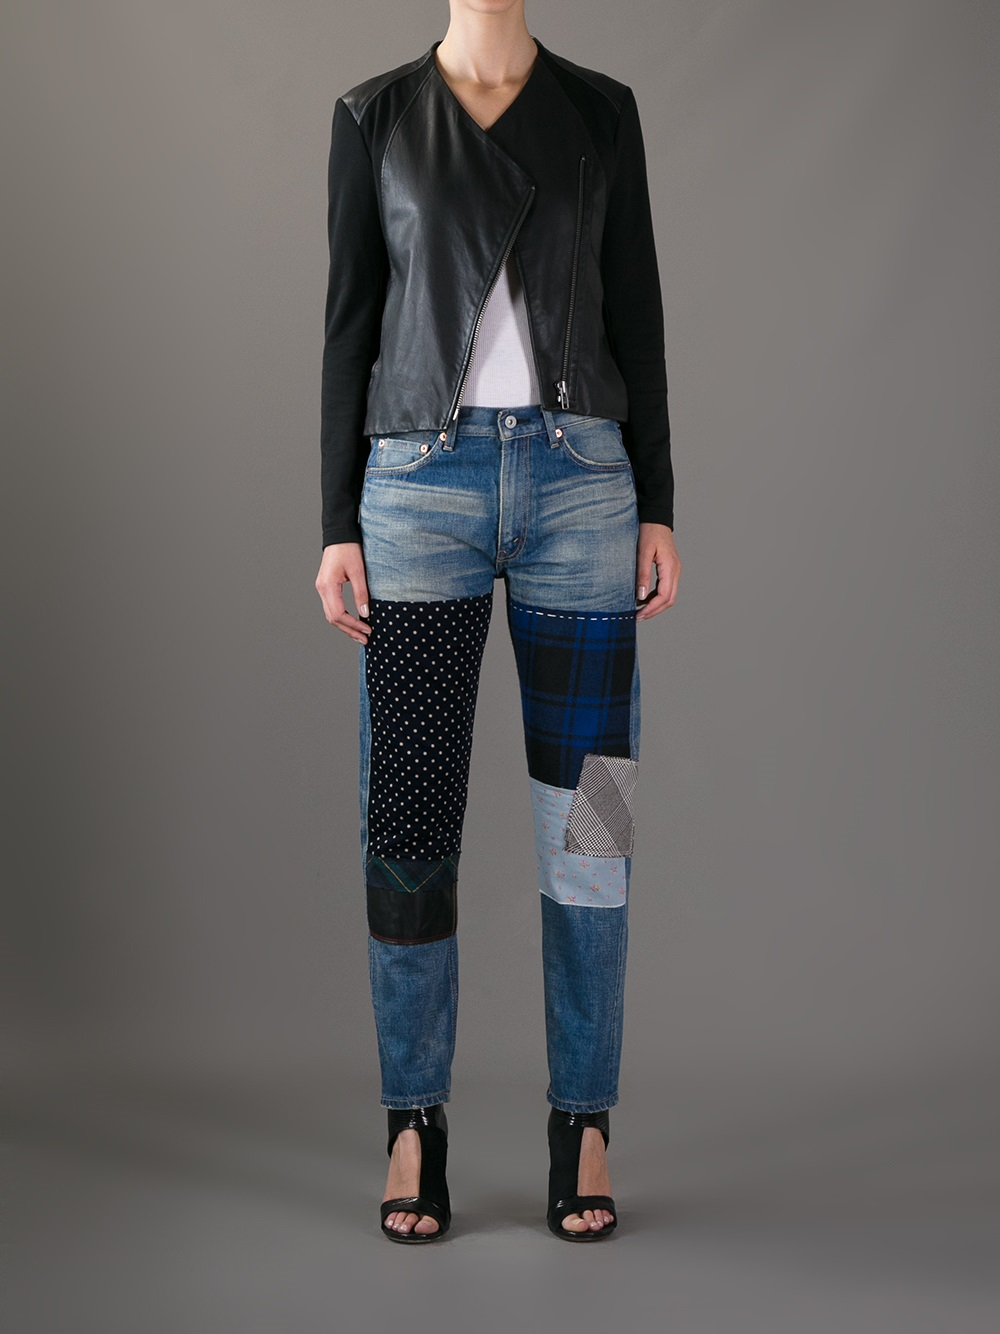 Junya Watanabe Patchwork Jeans - The Parliament - Farfetch.com_files.jpg